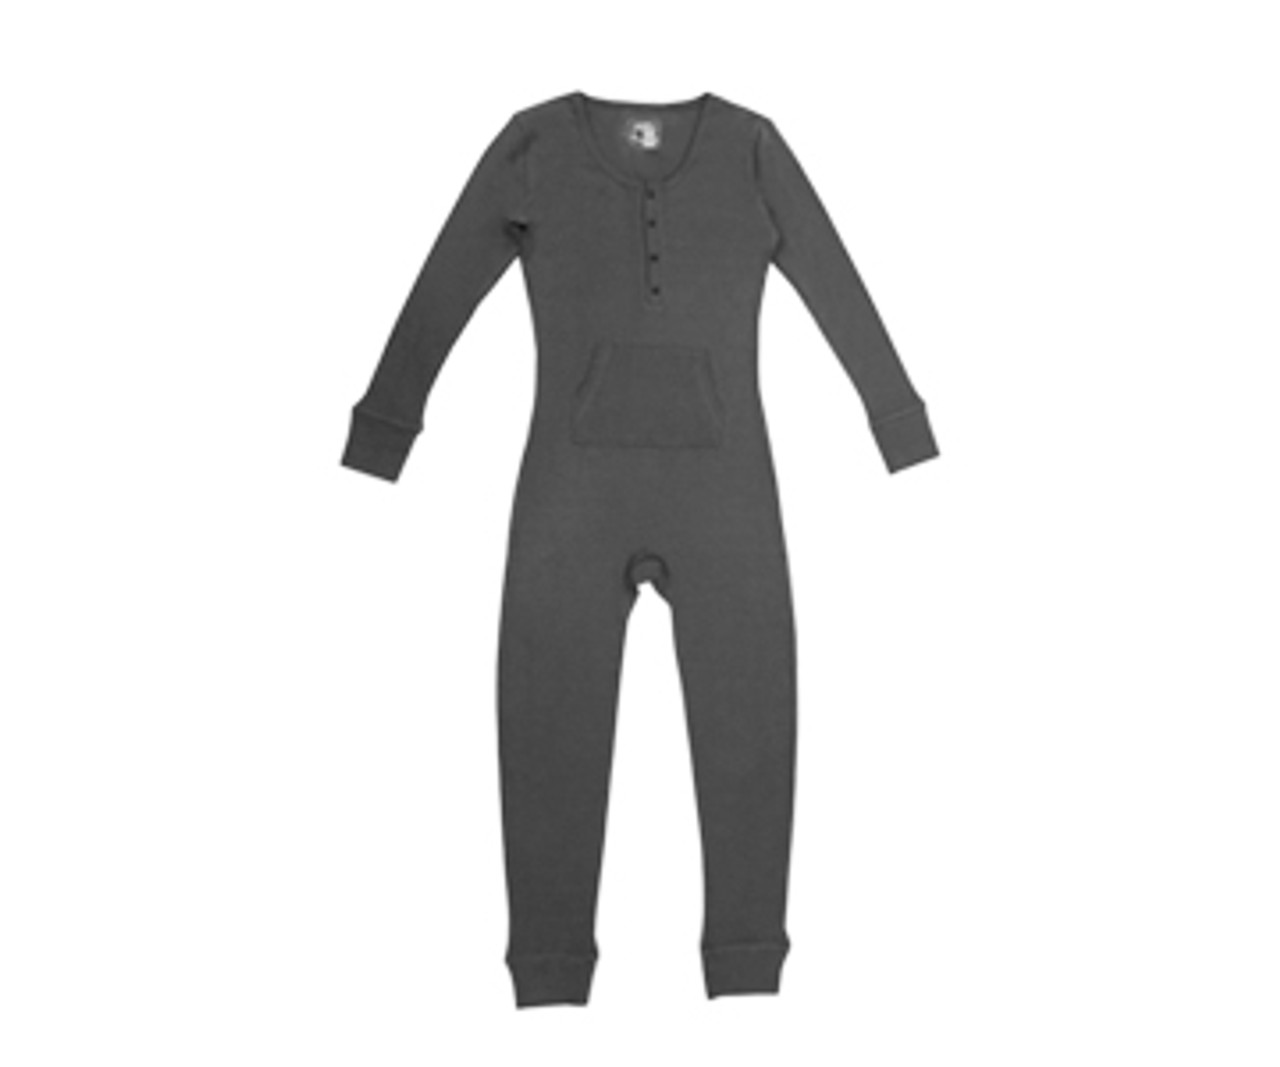 95152ddc6 Organic Thermal Women's Onesie in Graphite